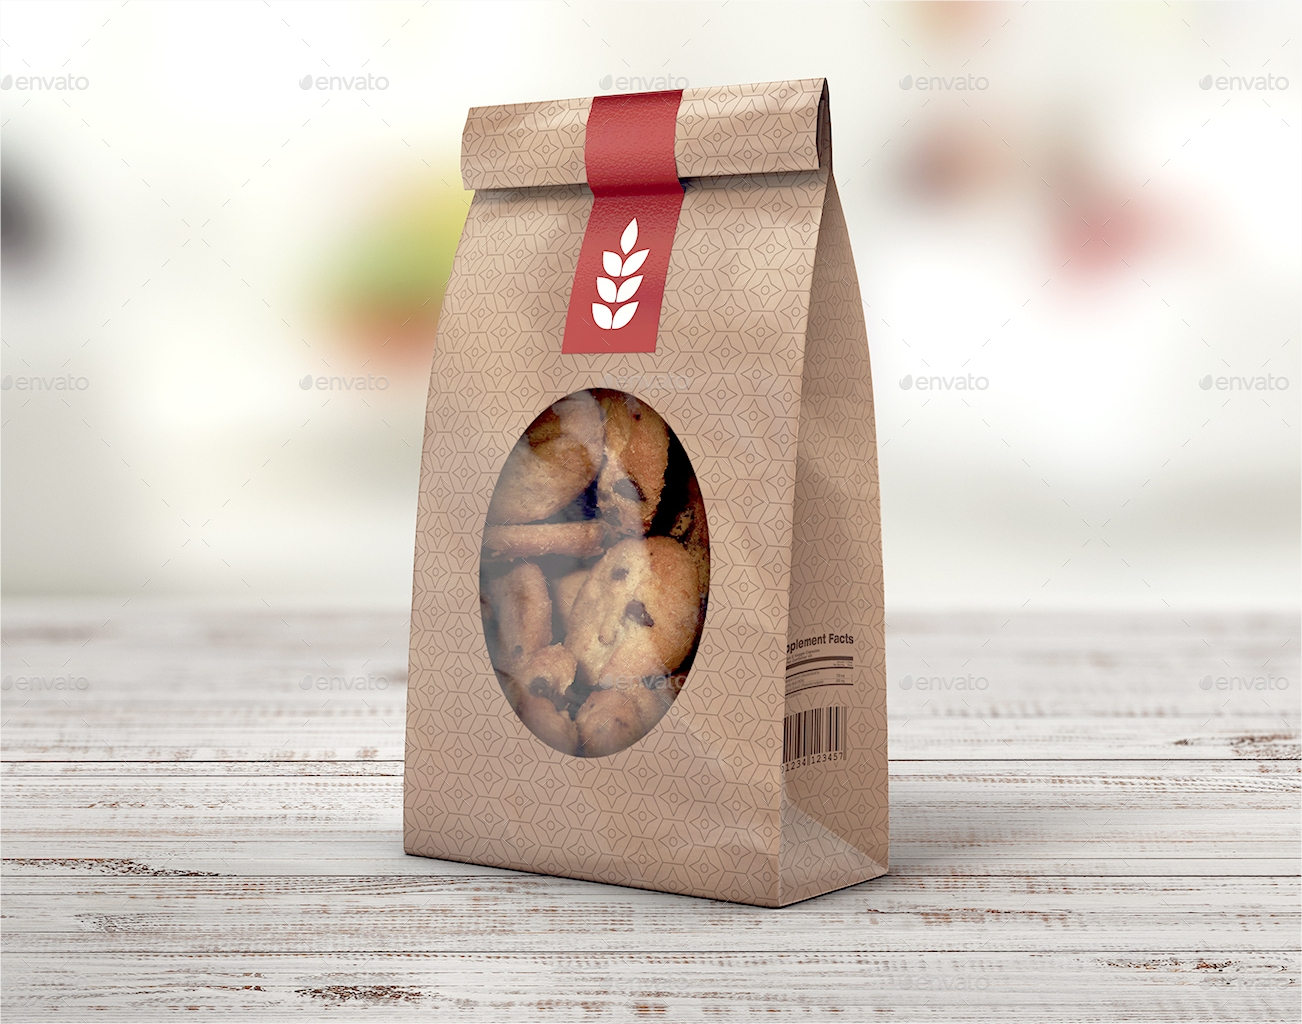 bakery cookie product packaging